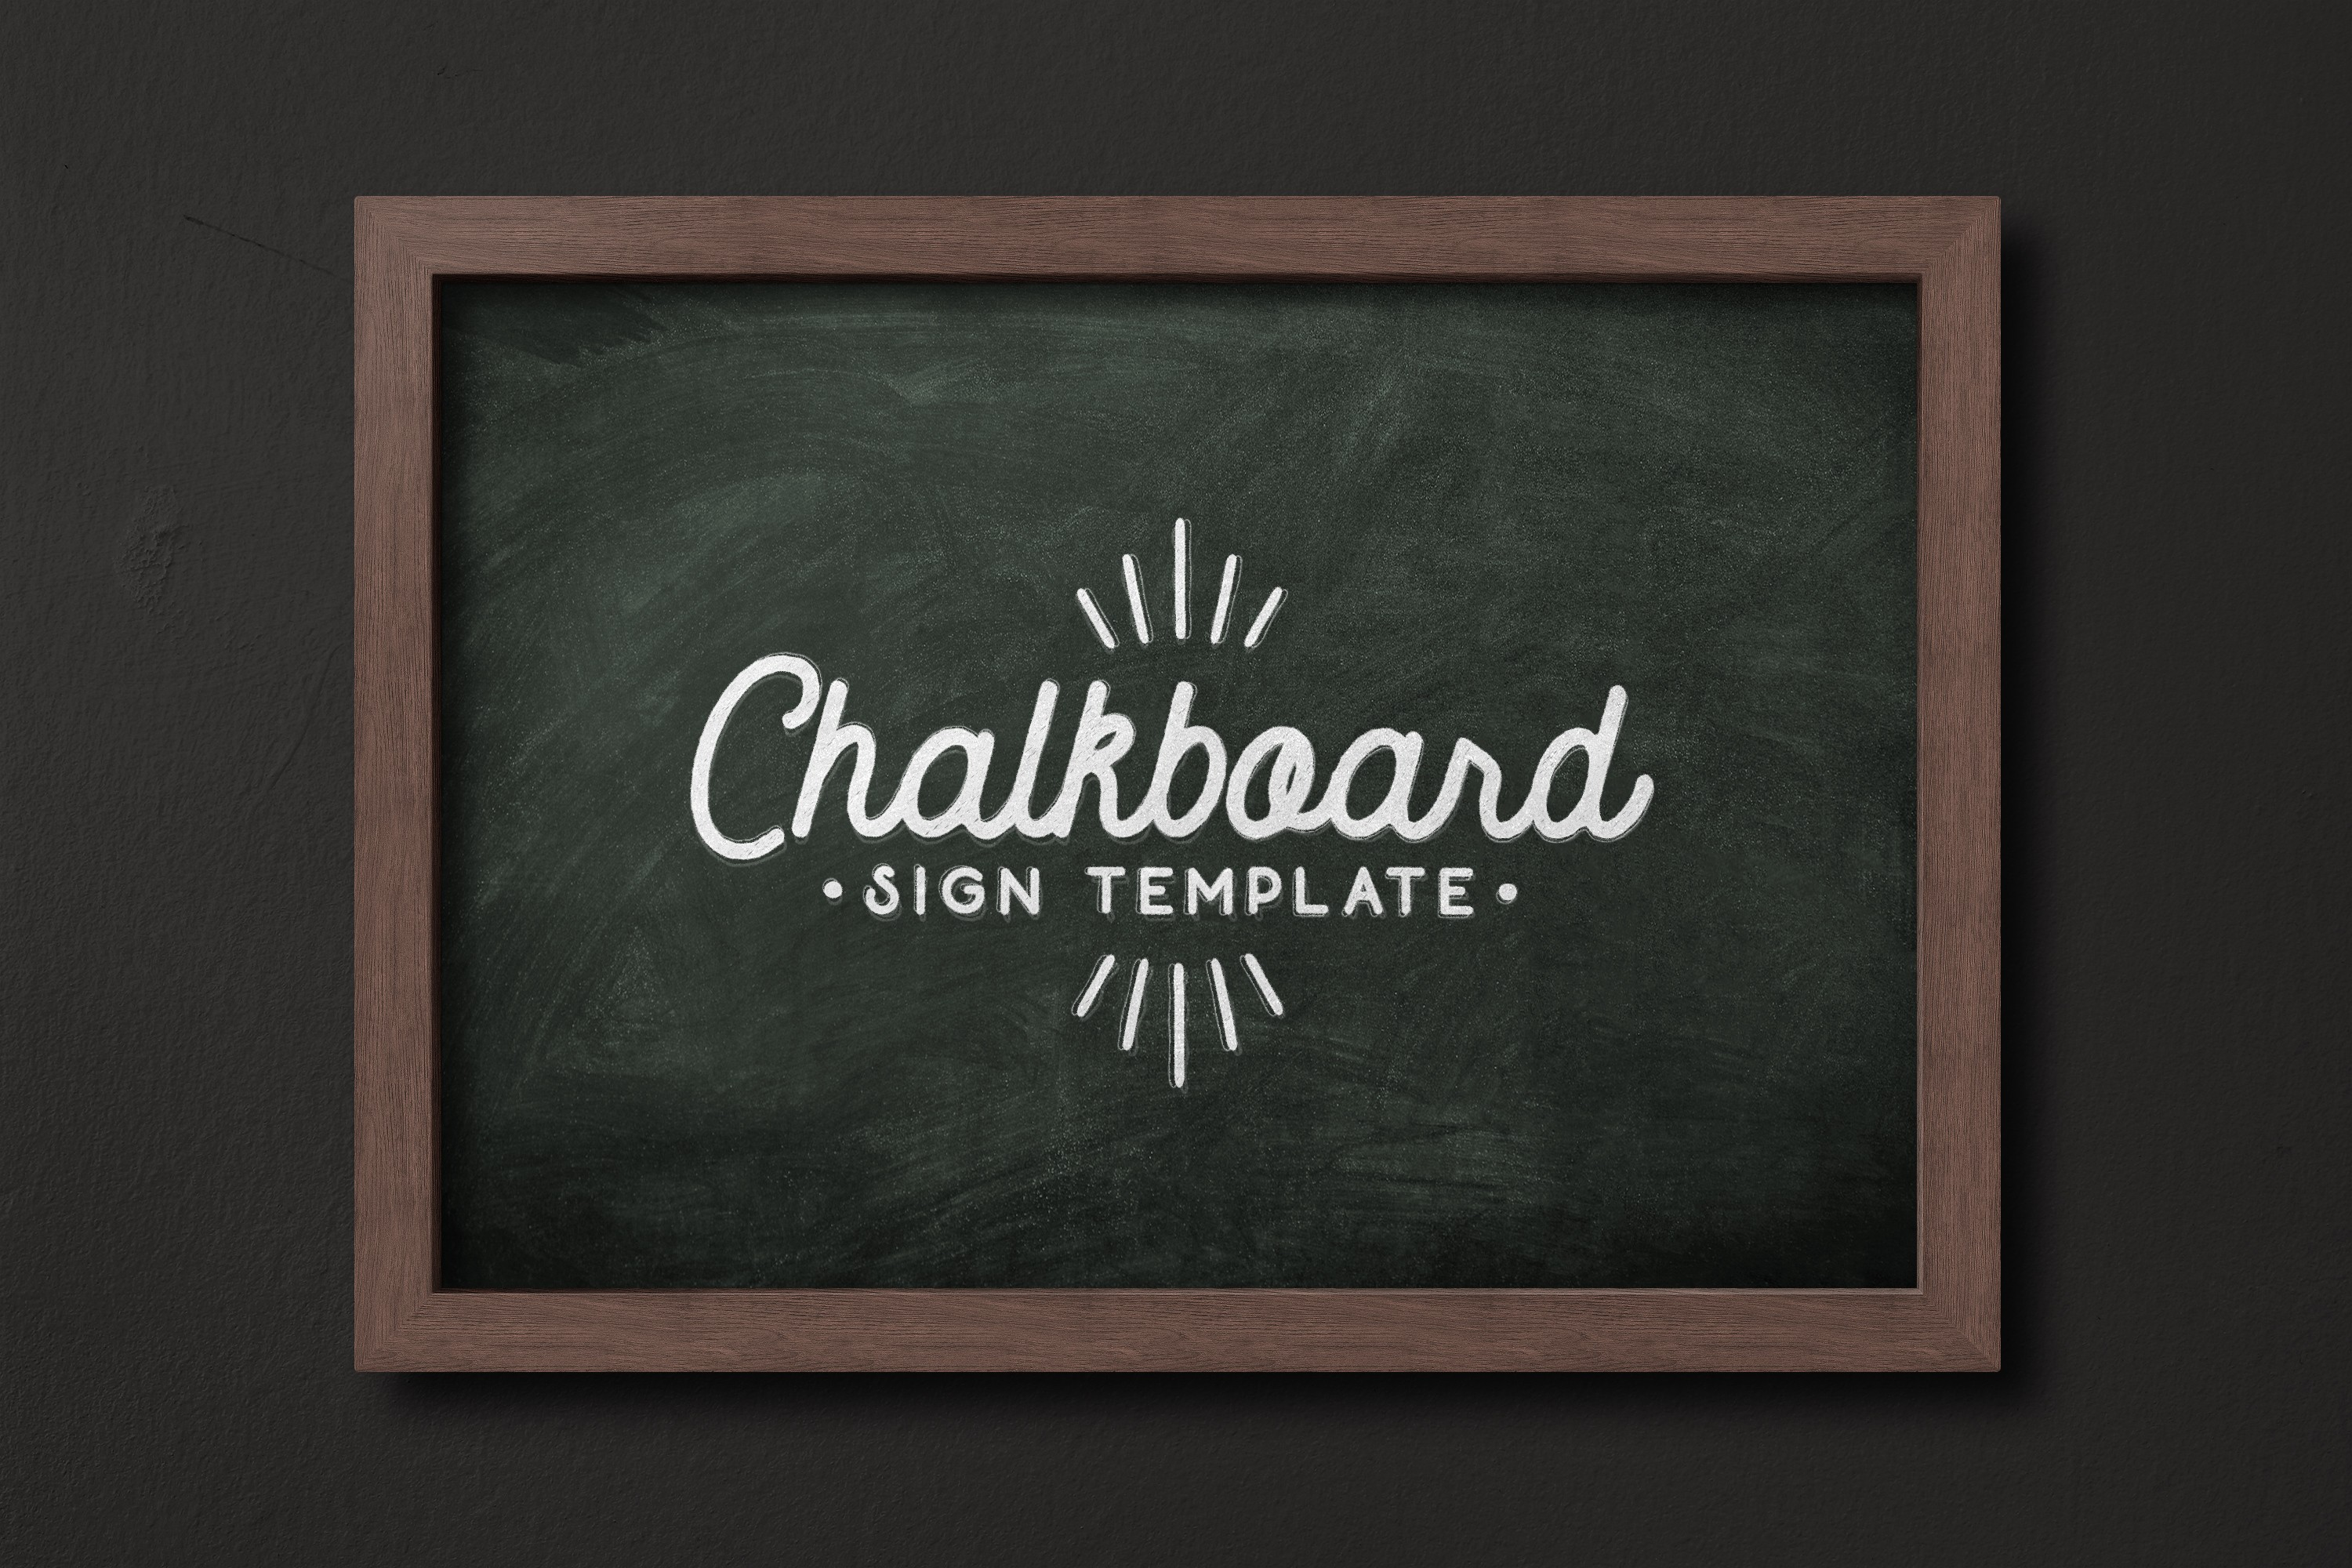 Chalkboard Sign Template 1